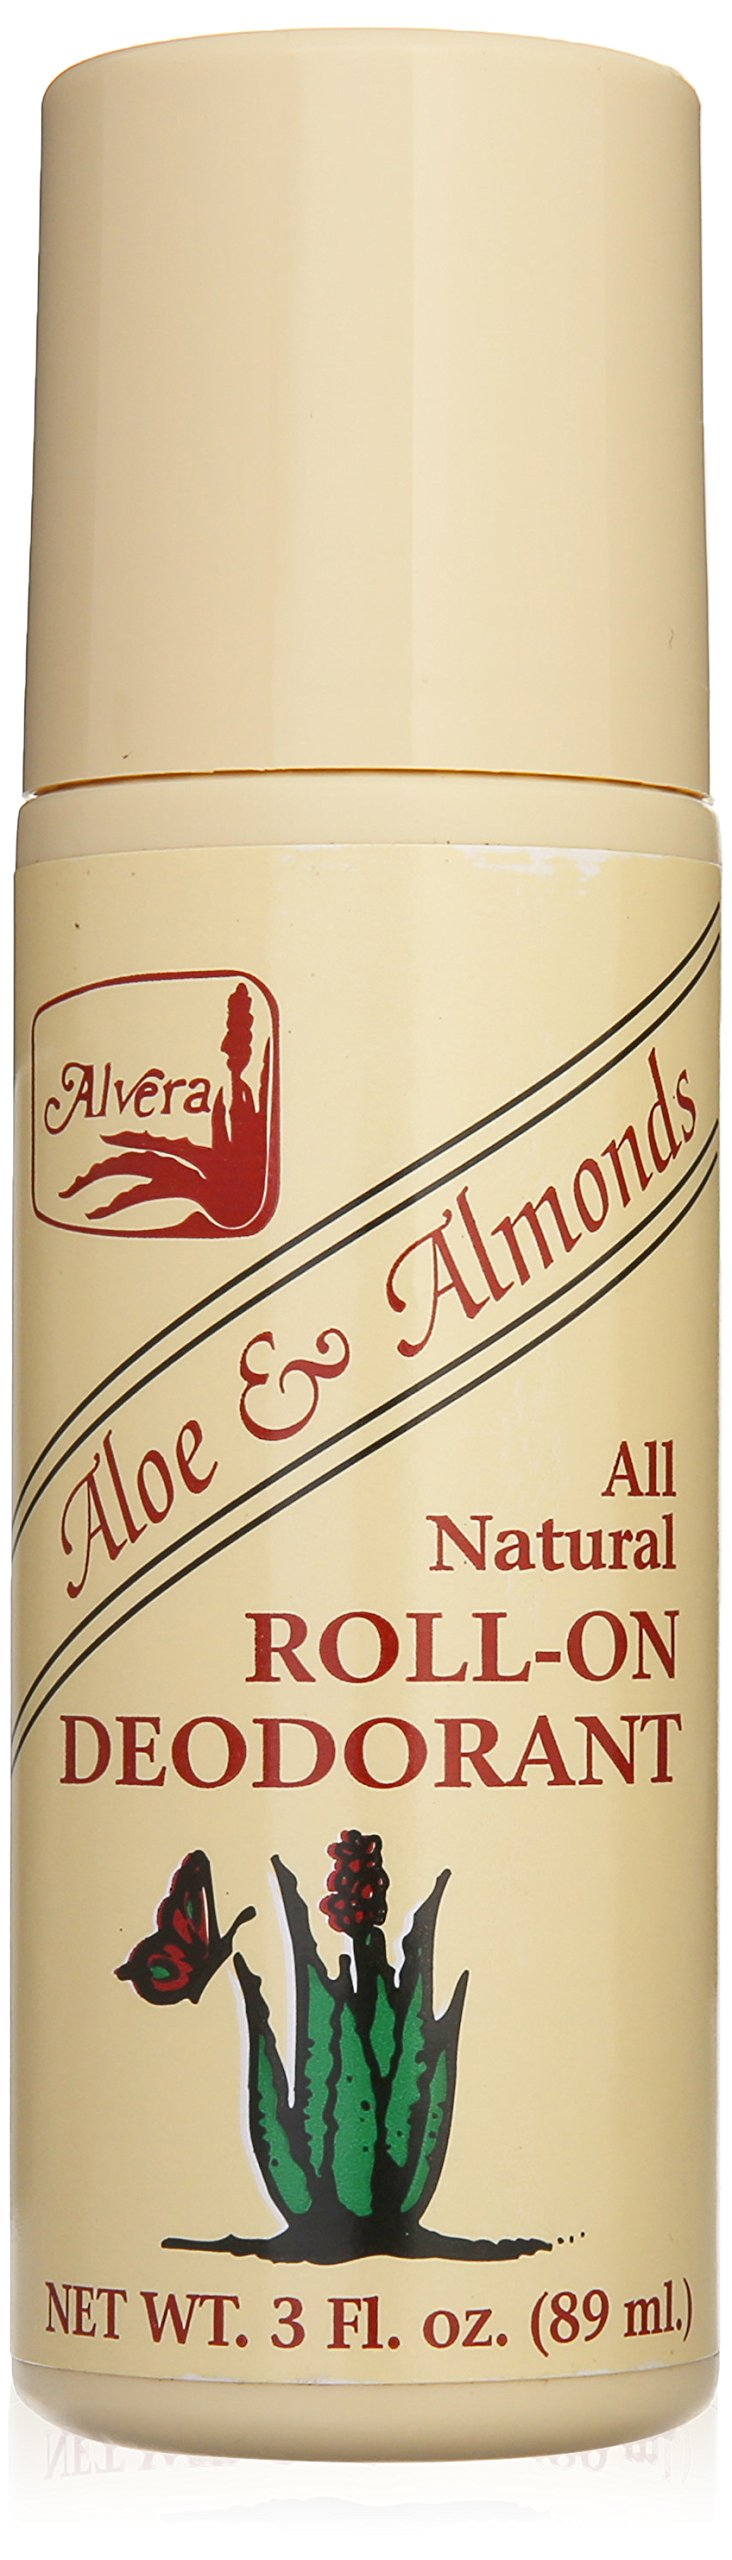 Alvera All Natural Roll-on Deodorant Aloe and Almonds - 3 Oz, 3 Fluid Ounce by Alvera (Image #1)